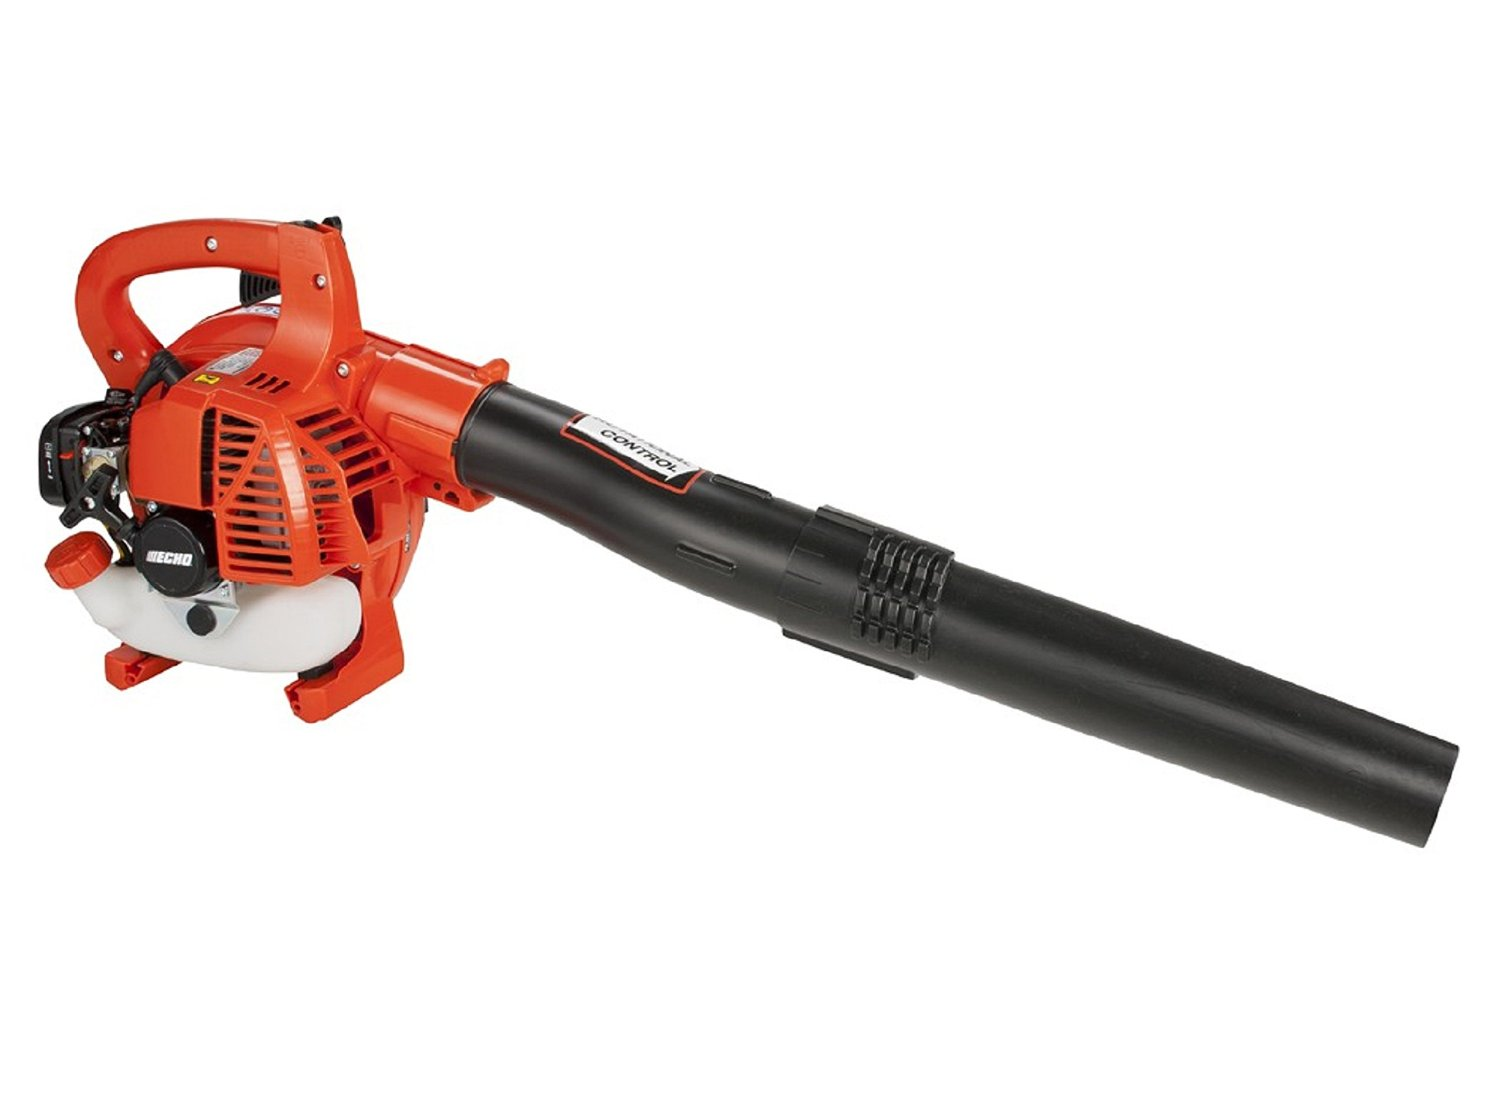 Air Powered Blower : Best leaf blowers vacuums reviews lawn care pal